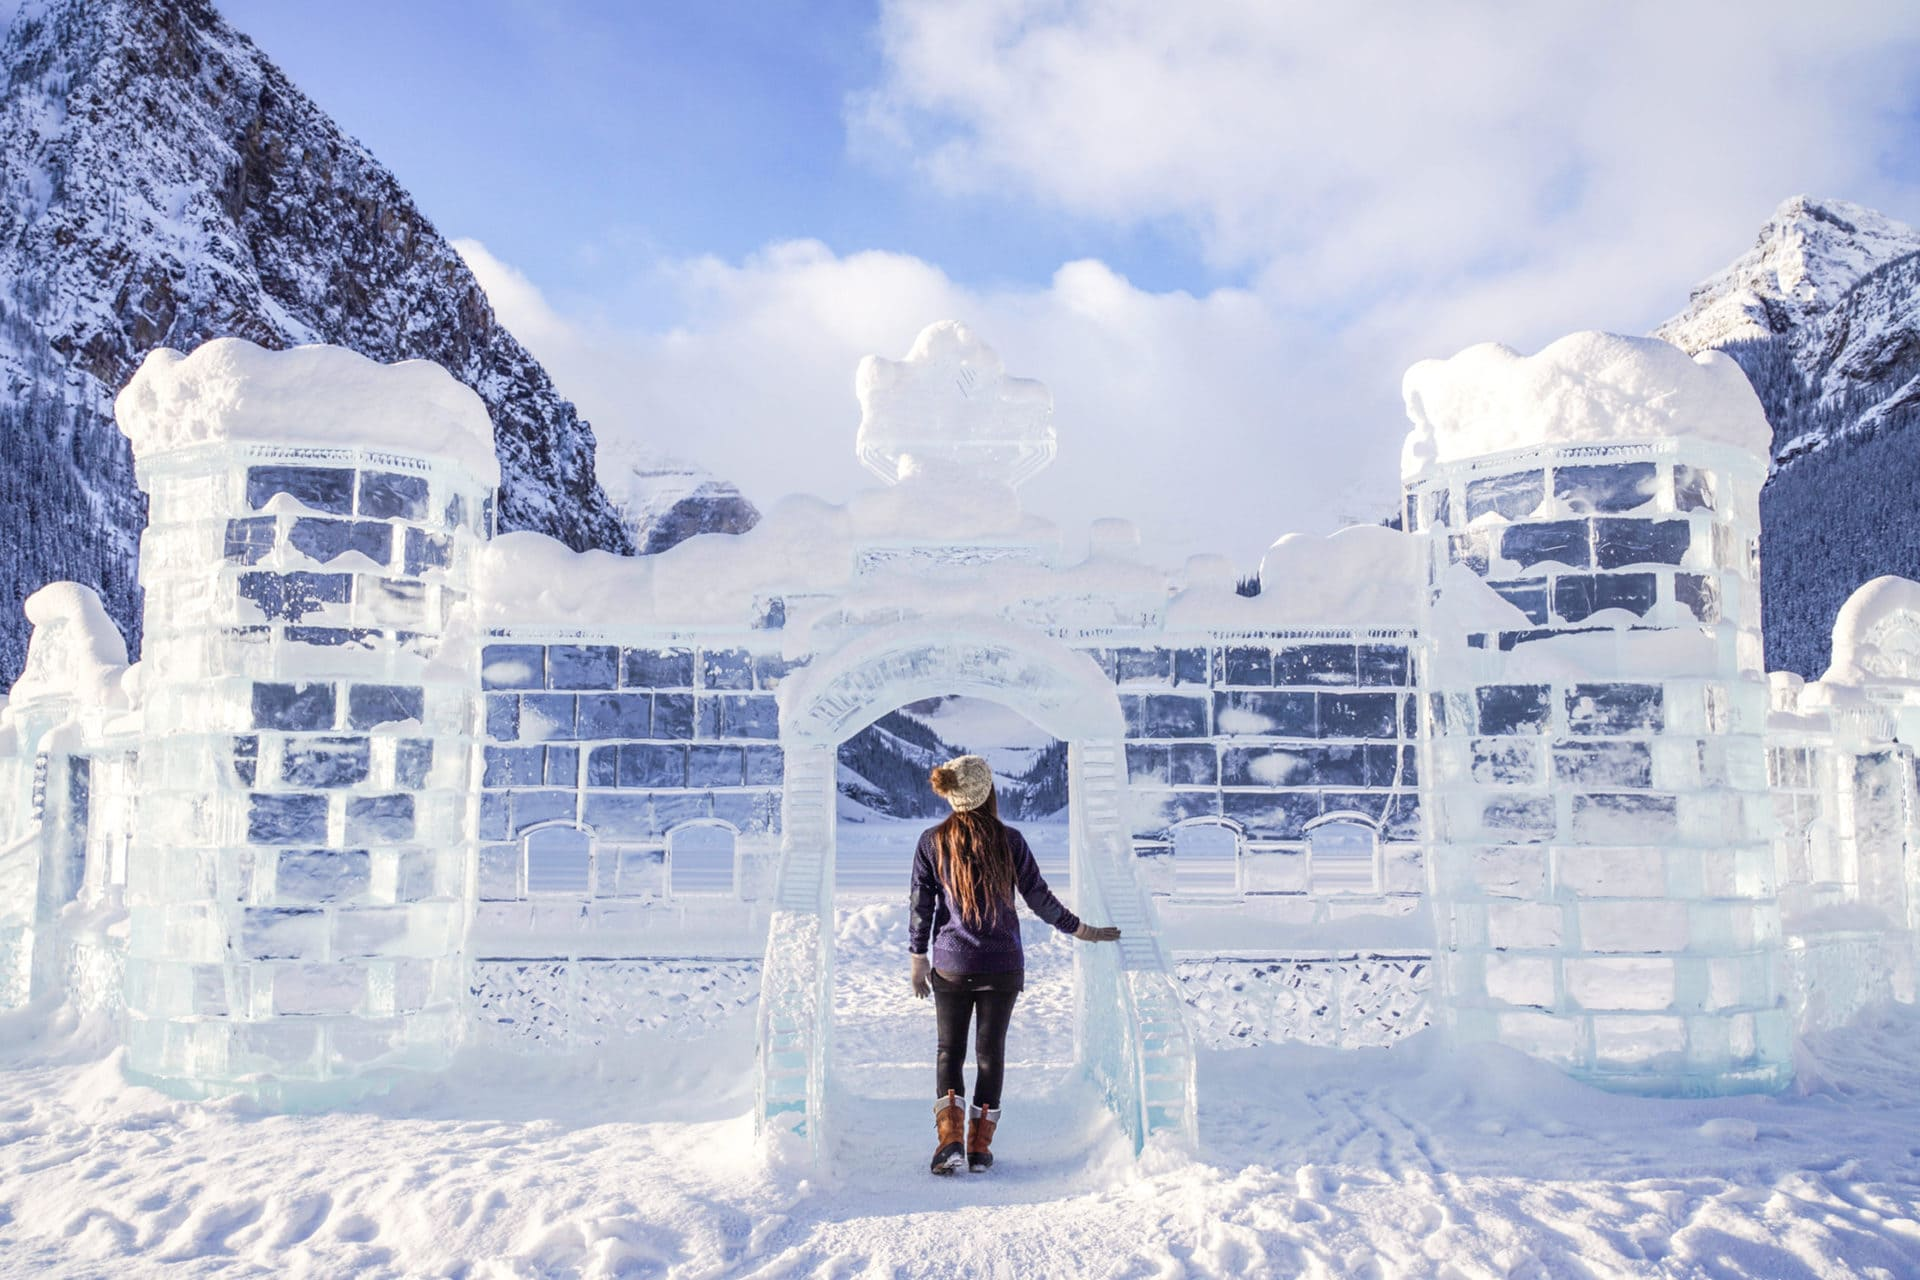 Teams of world-class carvers create frosty masterpieces during Banff's Ice Magic festival